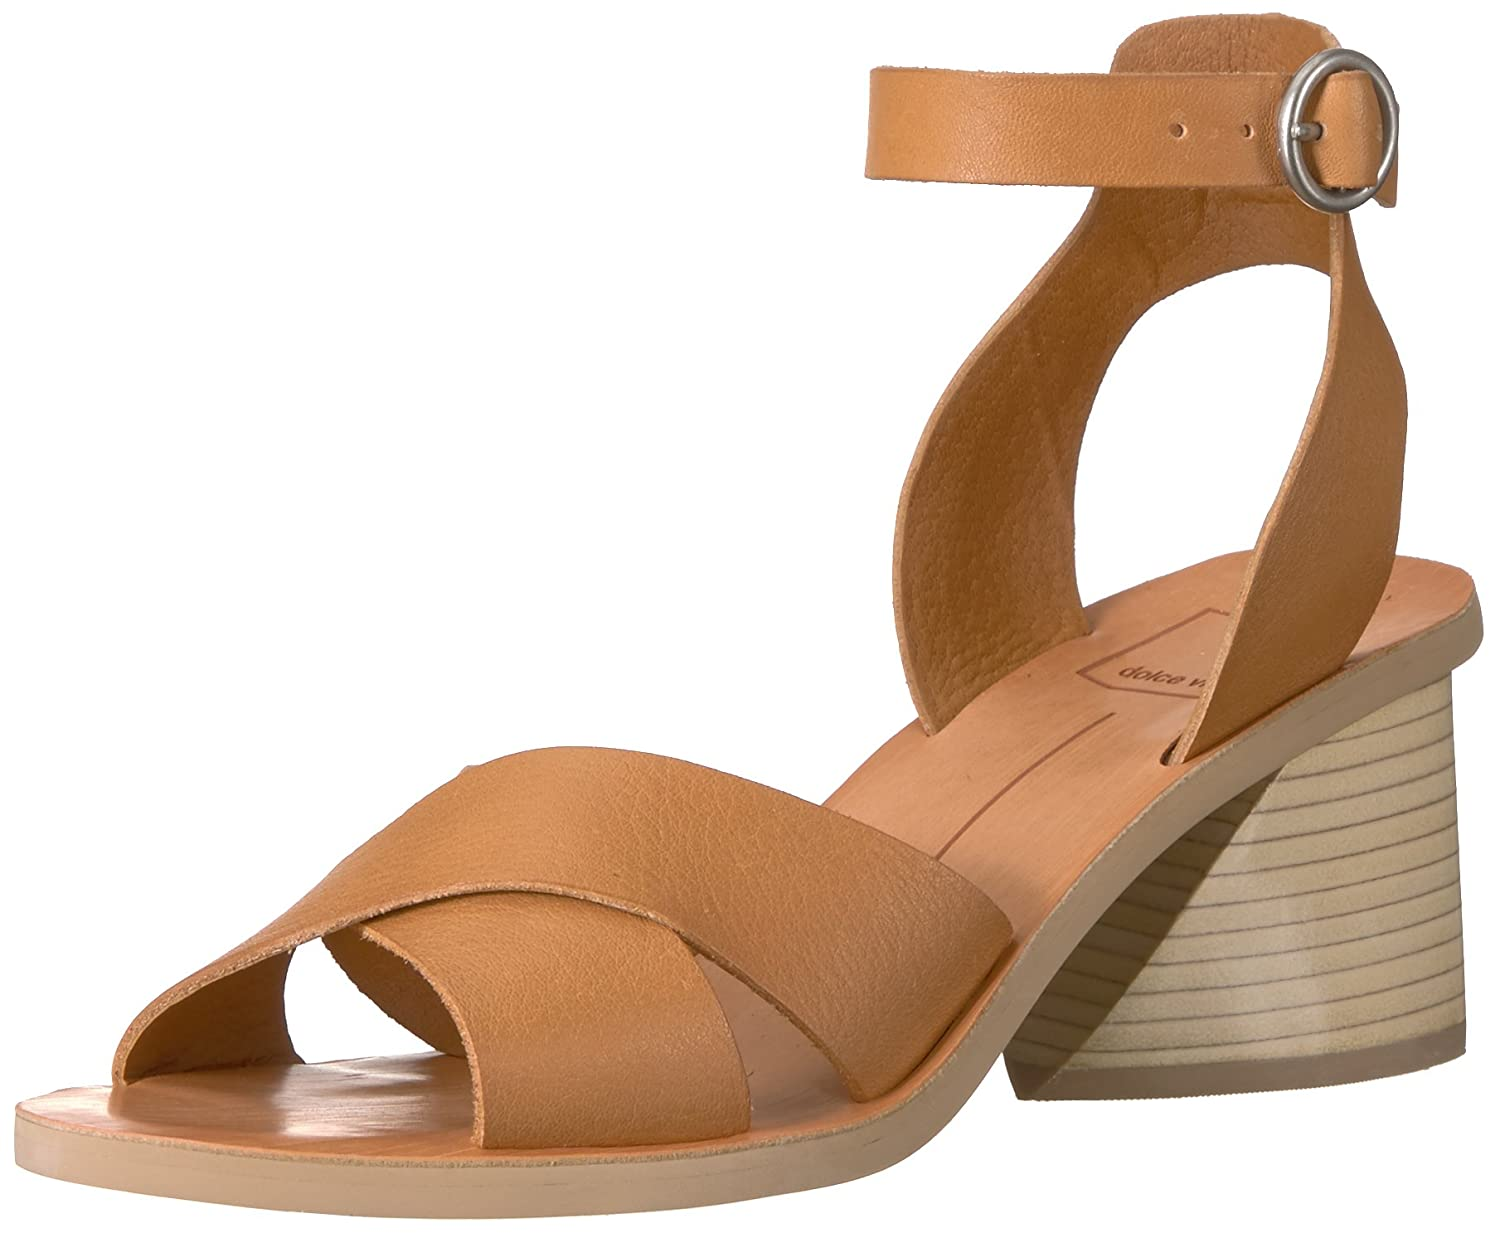 2c7ab497a Amazon.com  Dolce Vita Women s Roman Heeled Sandal  Dolce Vita  Shoes